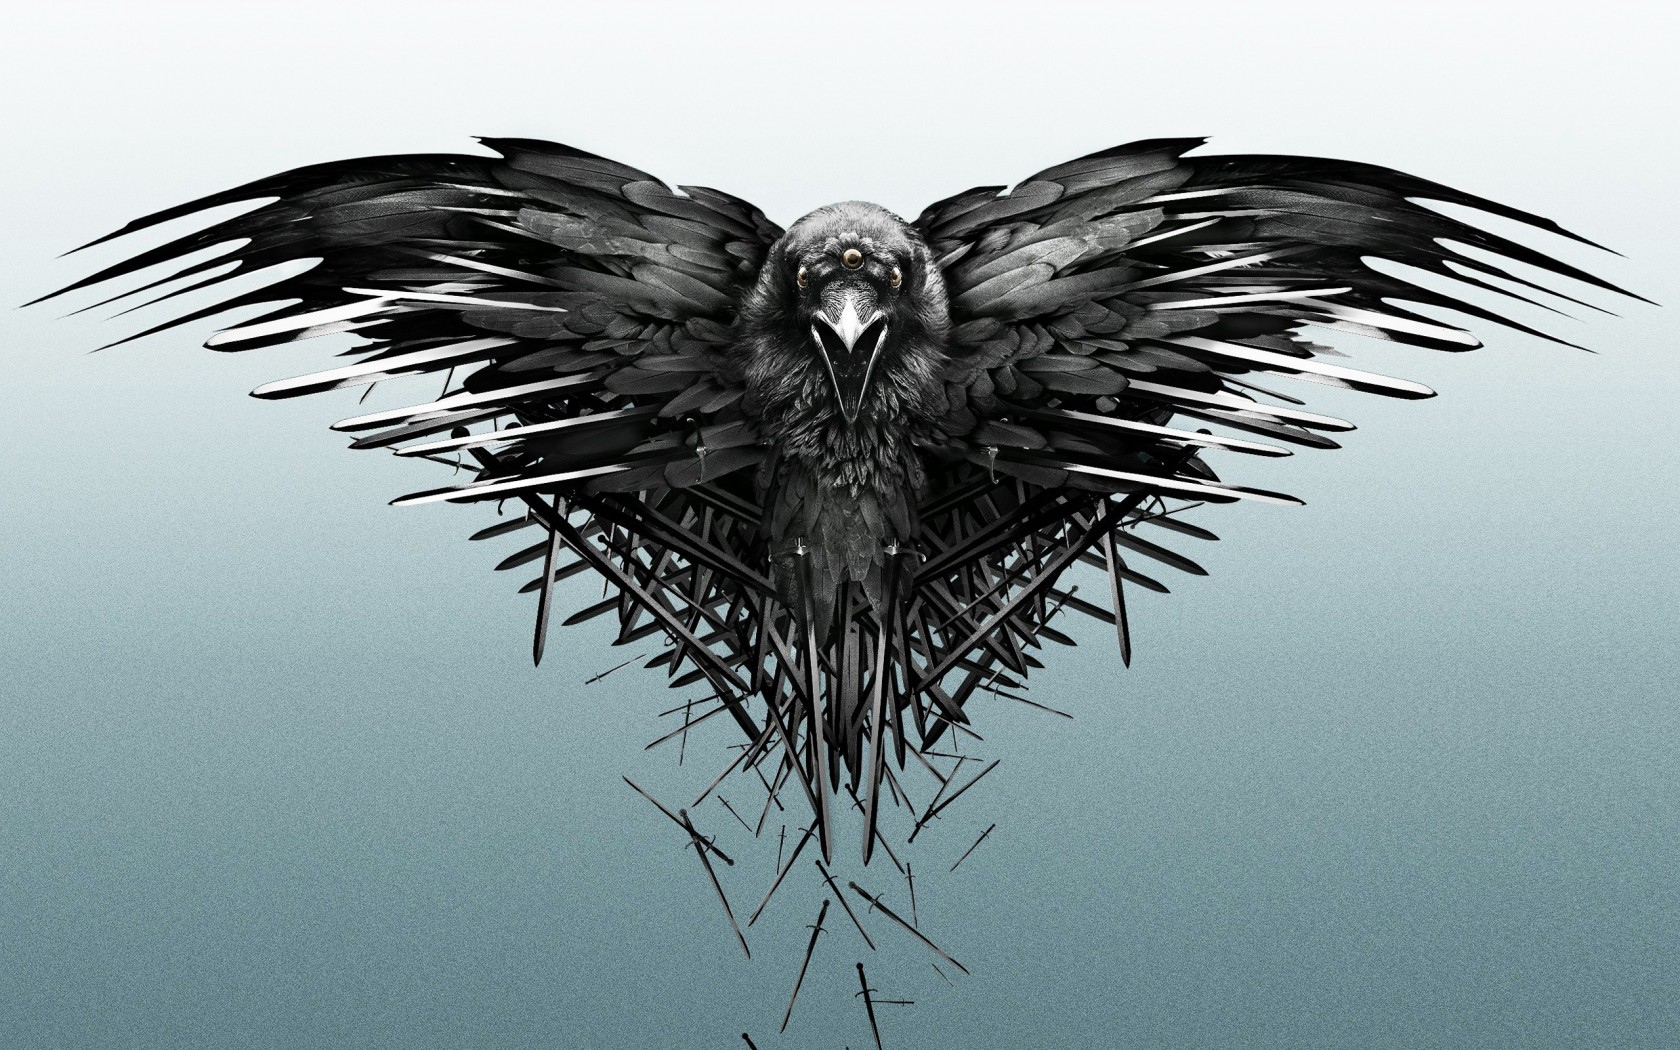 game of thrones crows lena headey peter dinklage michelle fairley nikolaj coster waldau